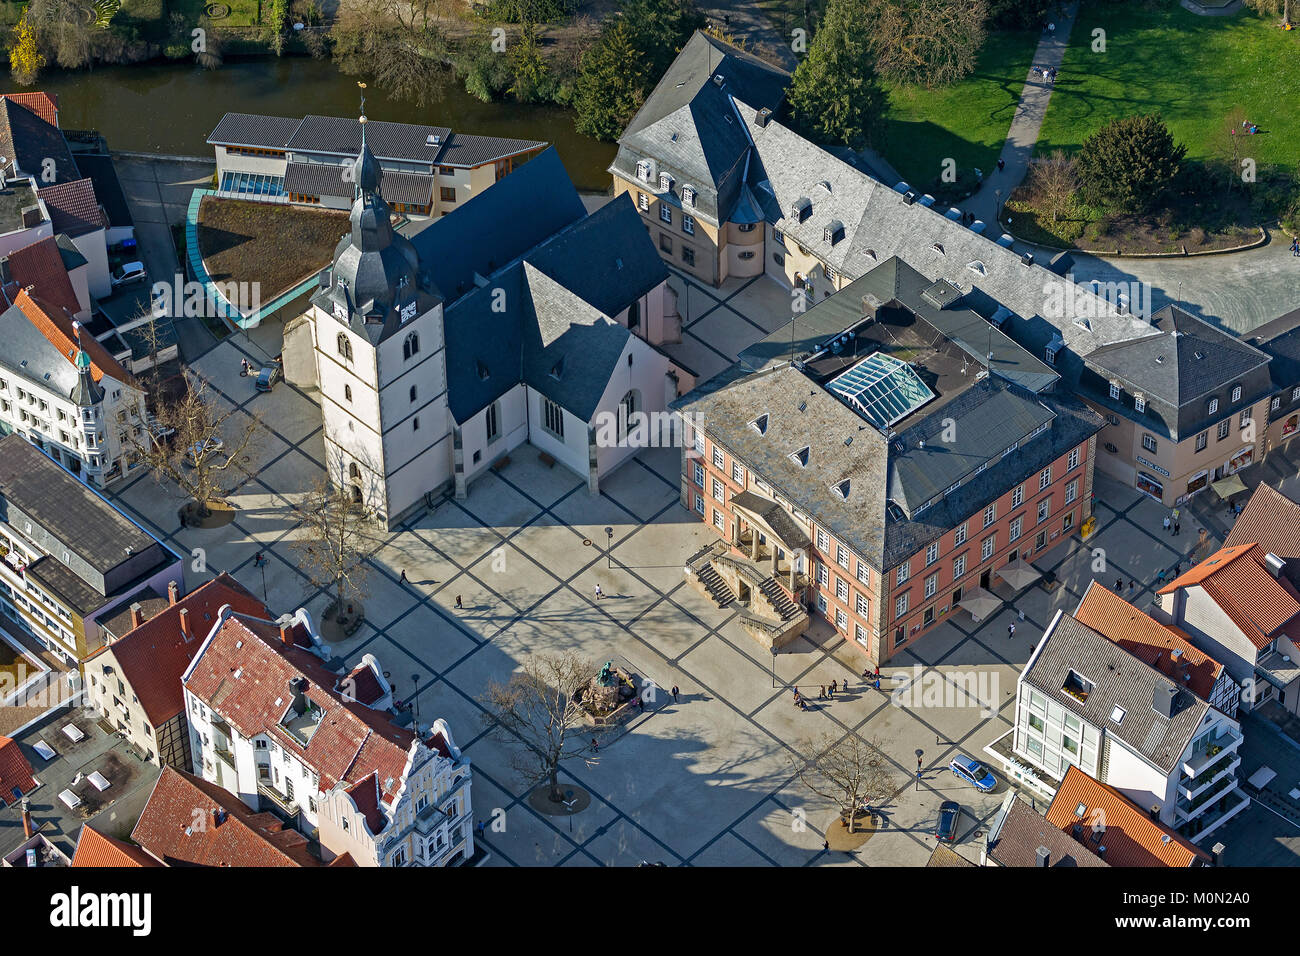 nnew marketplace with Redeemer Church and Martin Luther Church, aerial photograph of Detmold, Detmold, North Rhine Rhine-Westphalia, Germany, Europe,  Stock Photo